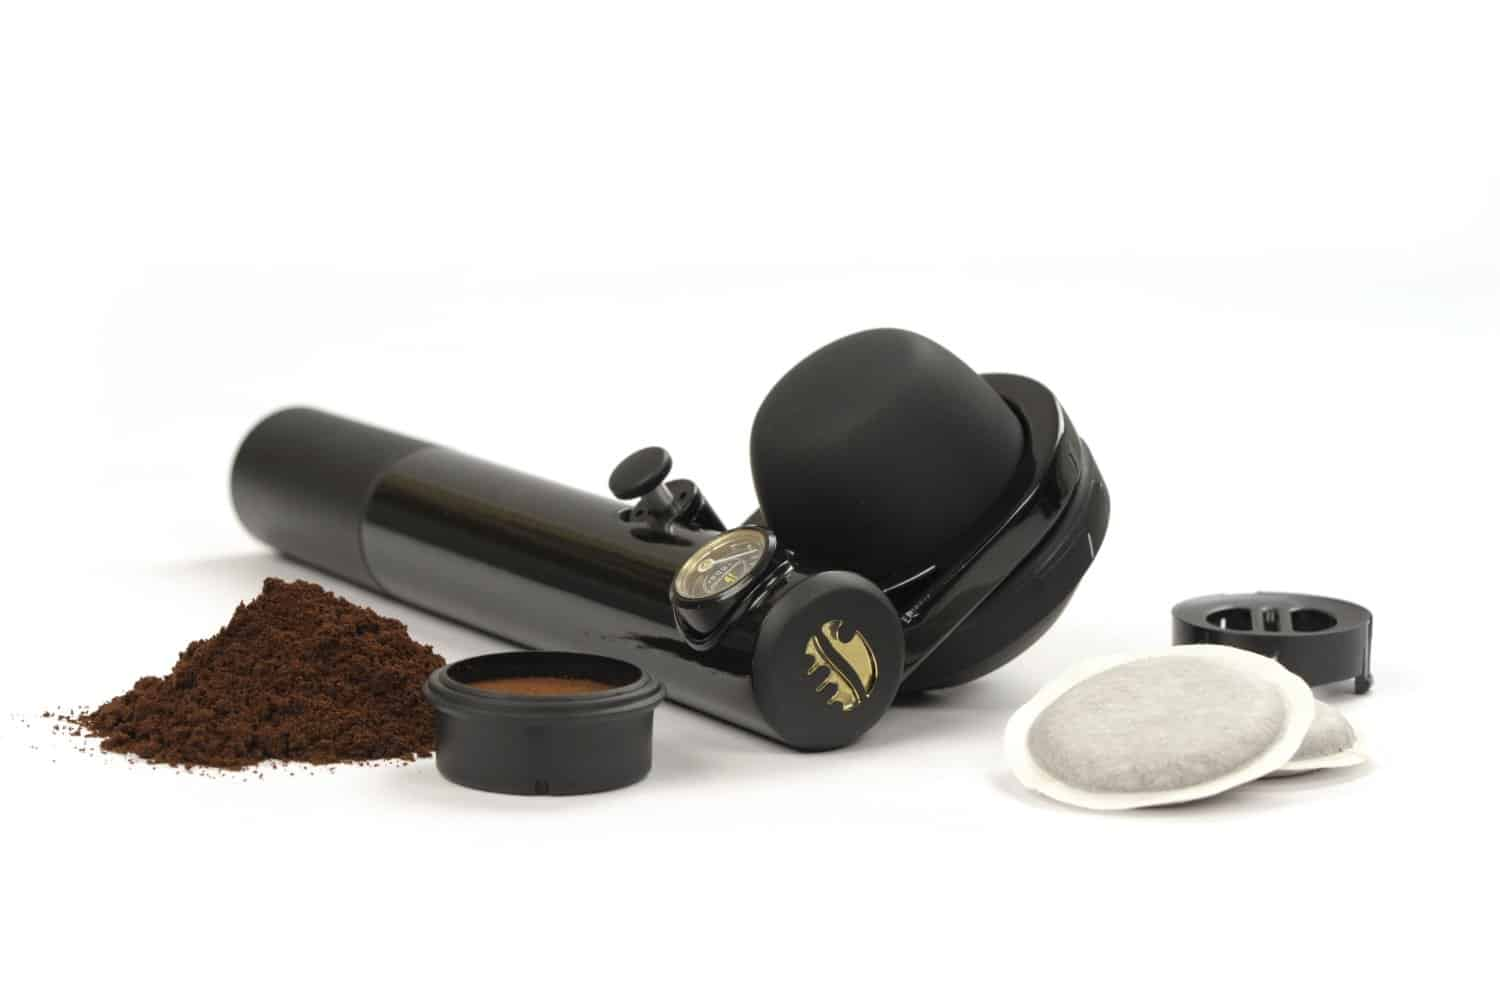 Handpresso Wild Hybrid Coffee Machine Cool Device for Travelers